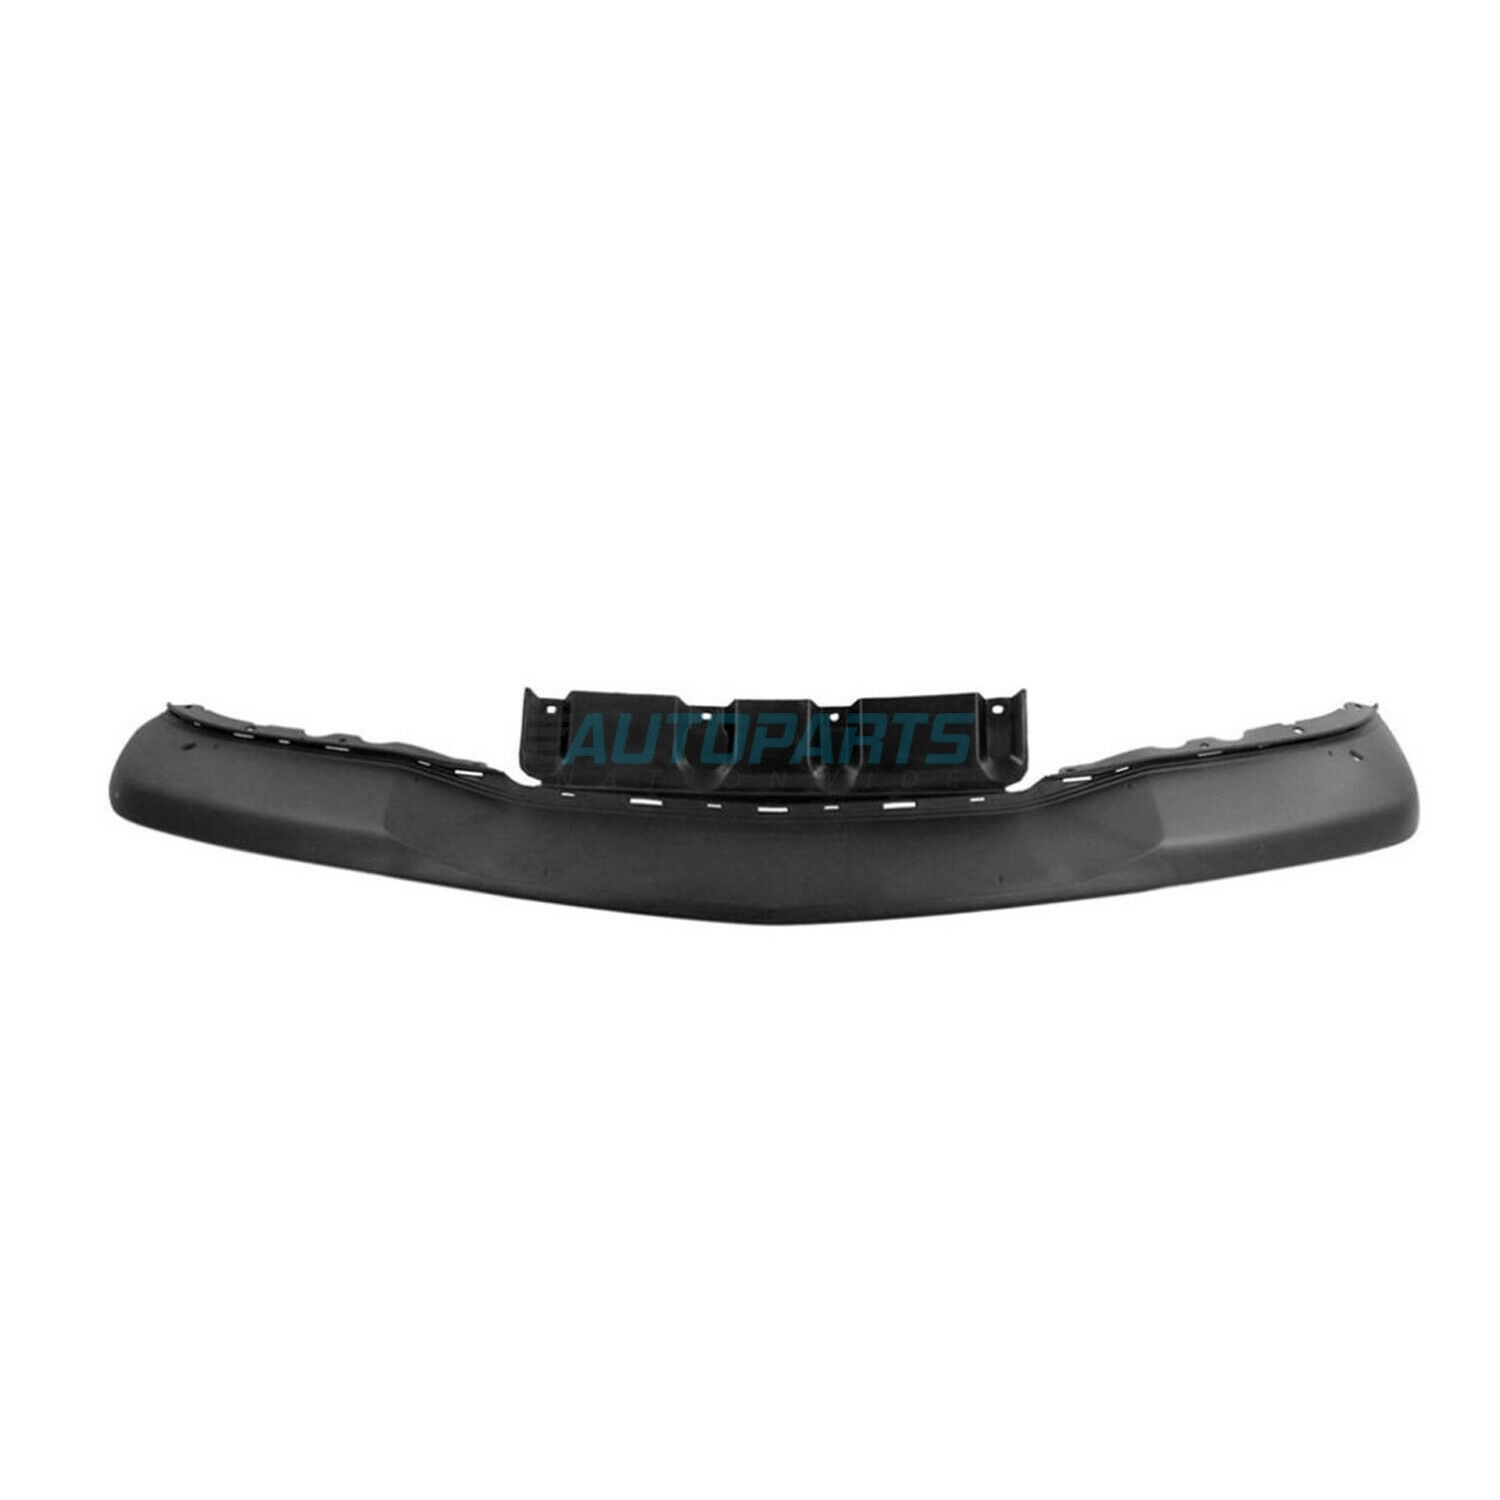 Front Bumper Skid Plate Black Fits 2014-2016 Acura MDX